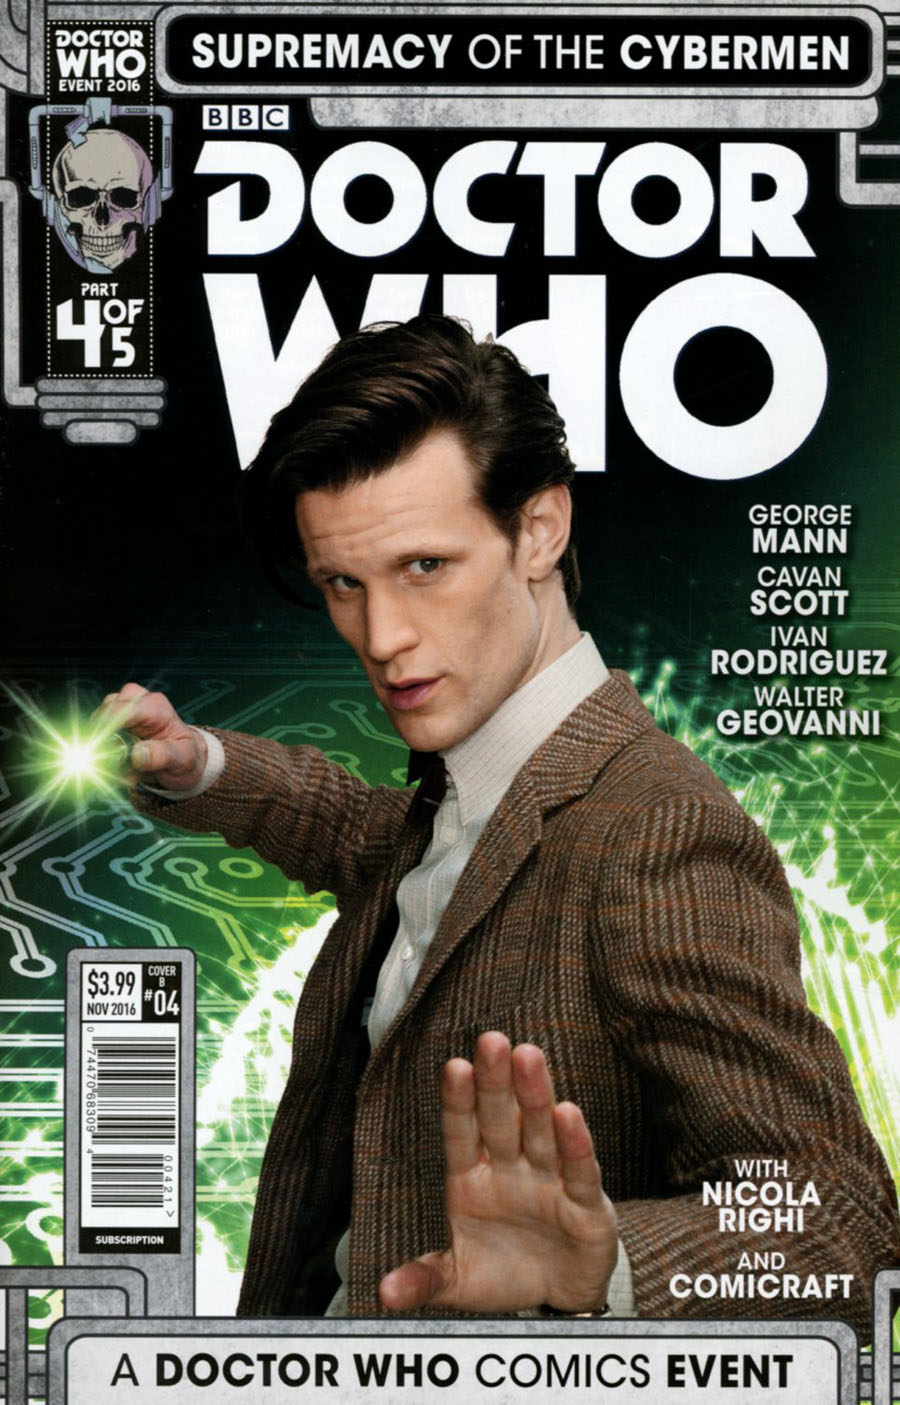 Doctor Who Event 2016 Supremacy Of The Cybermen #4 Cover B Variant Photo Cover